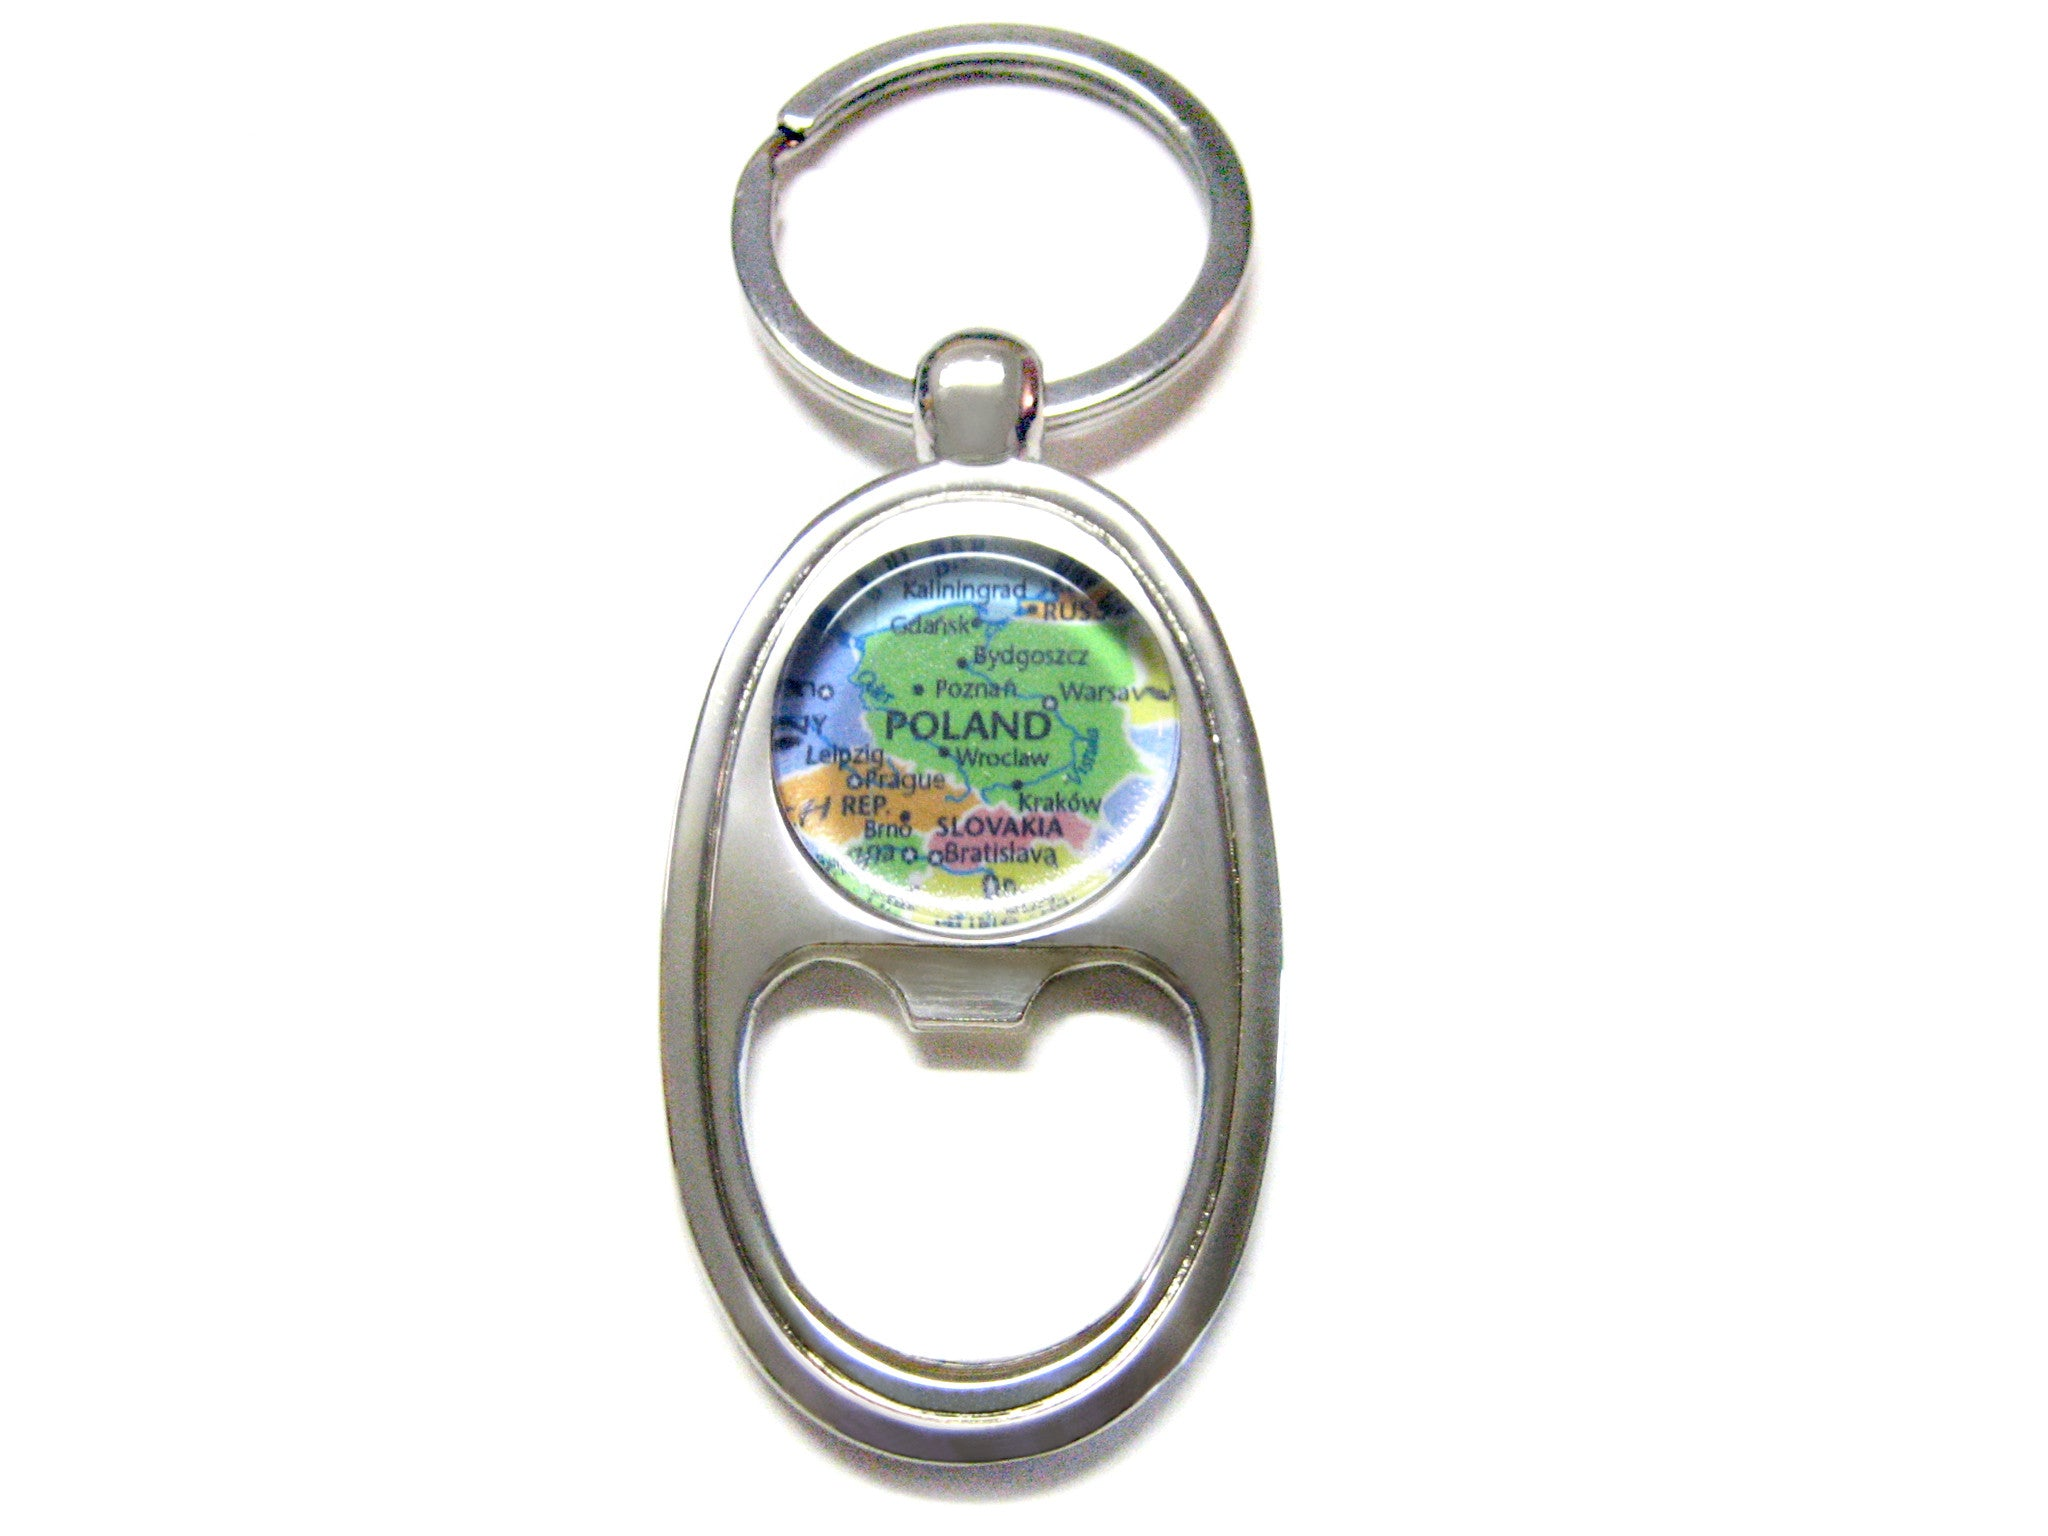 Poland Map Bottle Opener Key Chain